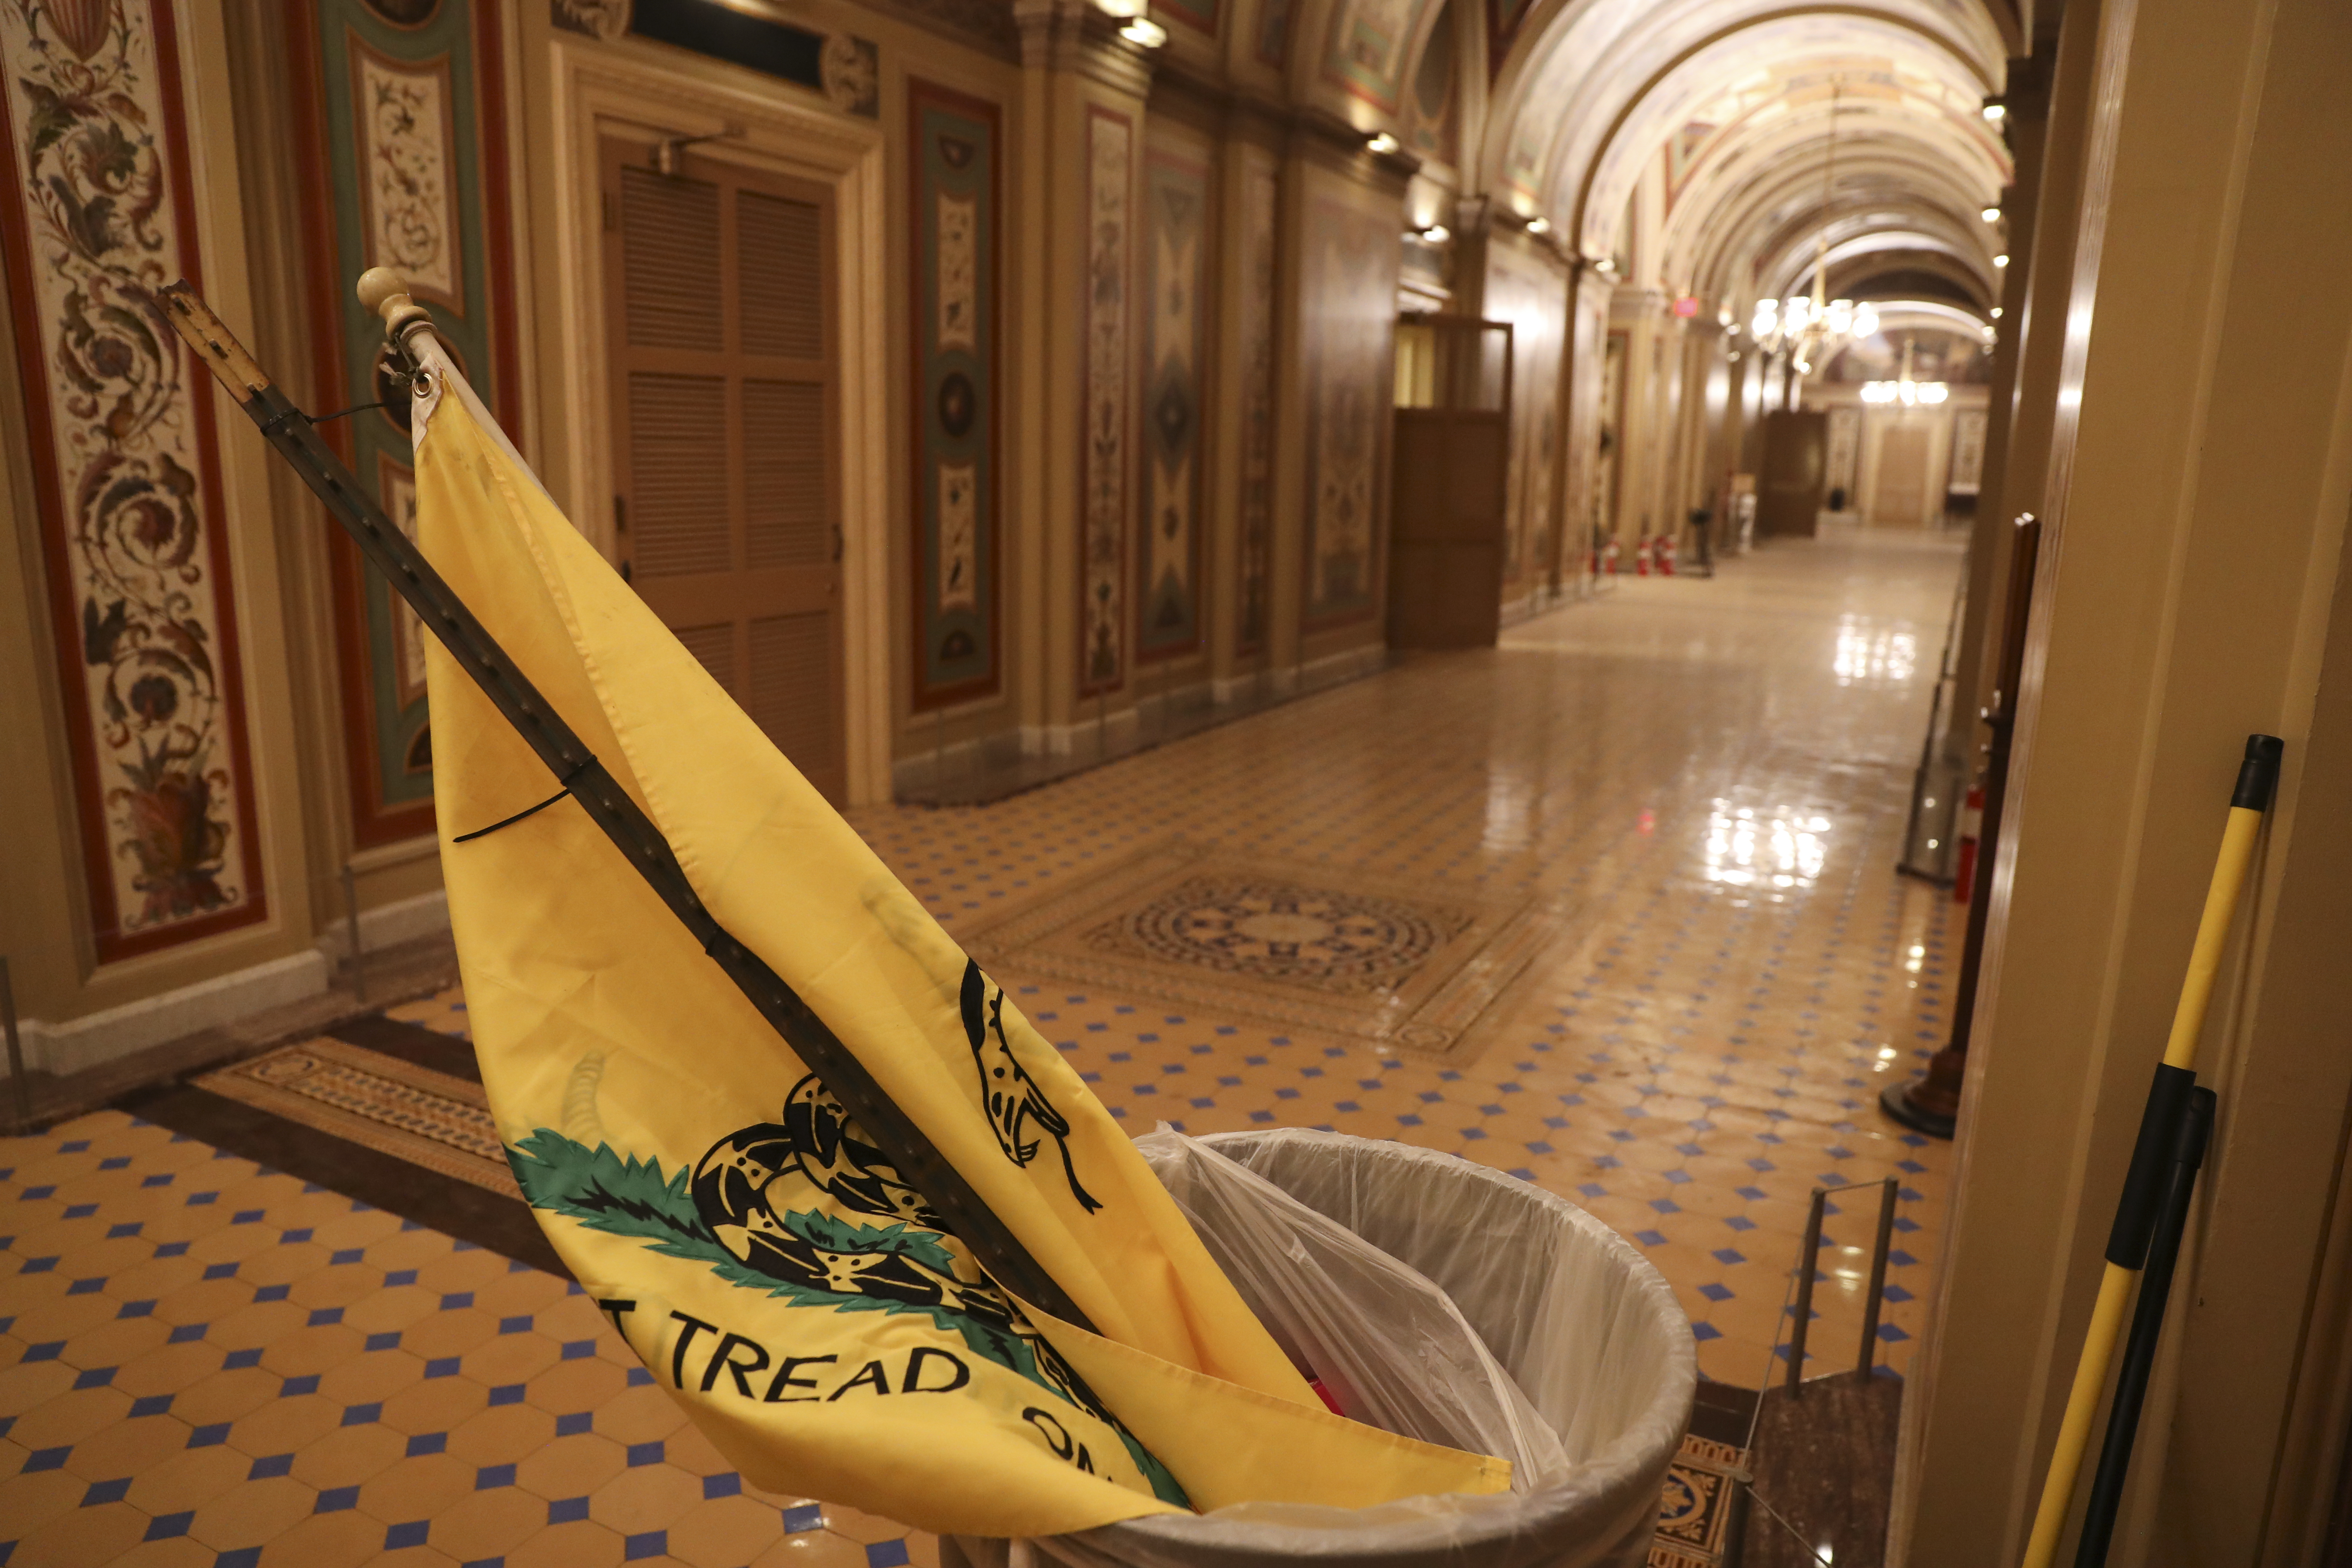 A Gadsden Flag flag left by Pro-Trump protesters who entered the U.S. Capitol building is seen after mass demonstrations in the nations capital during a joint session Congress to ratify President-elect Joe Biden on January 06, 2021 in Washington, DC.